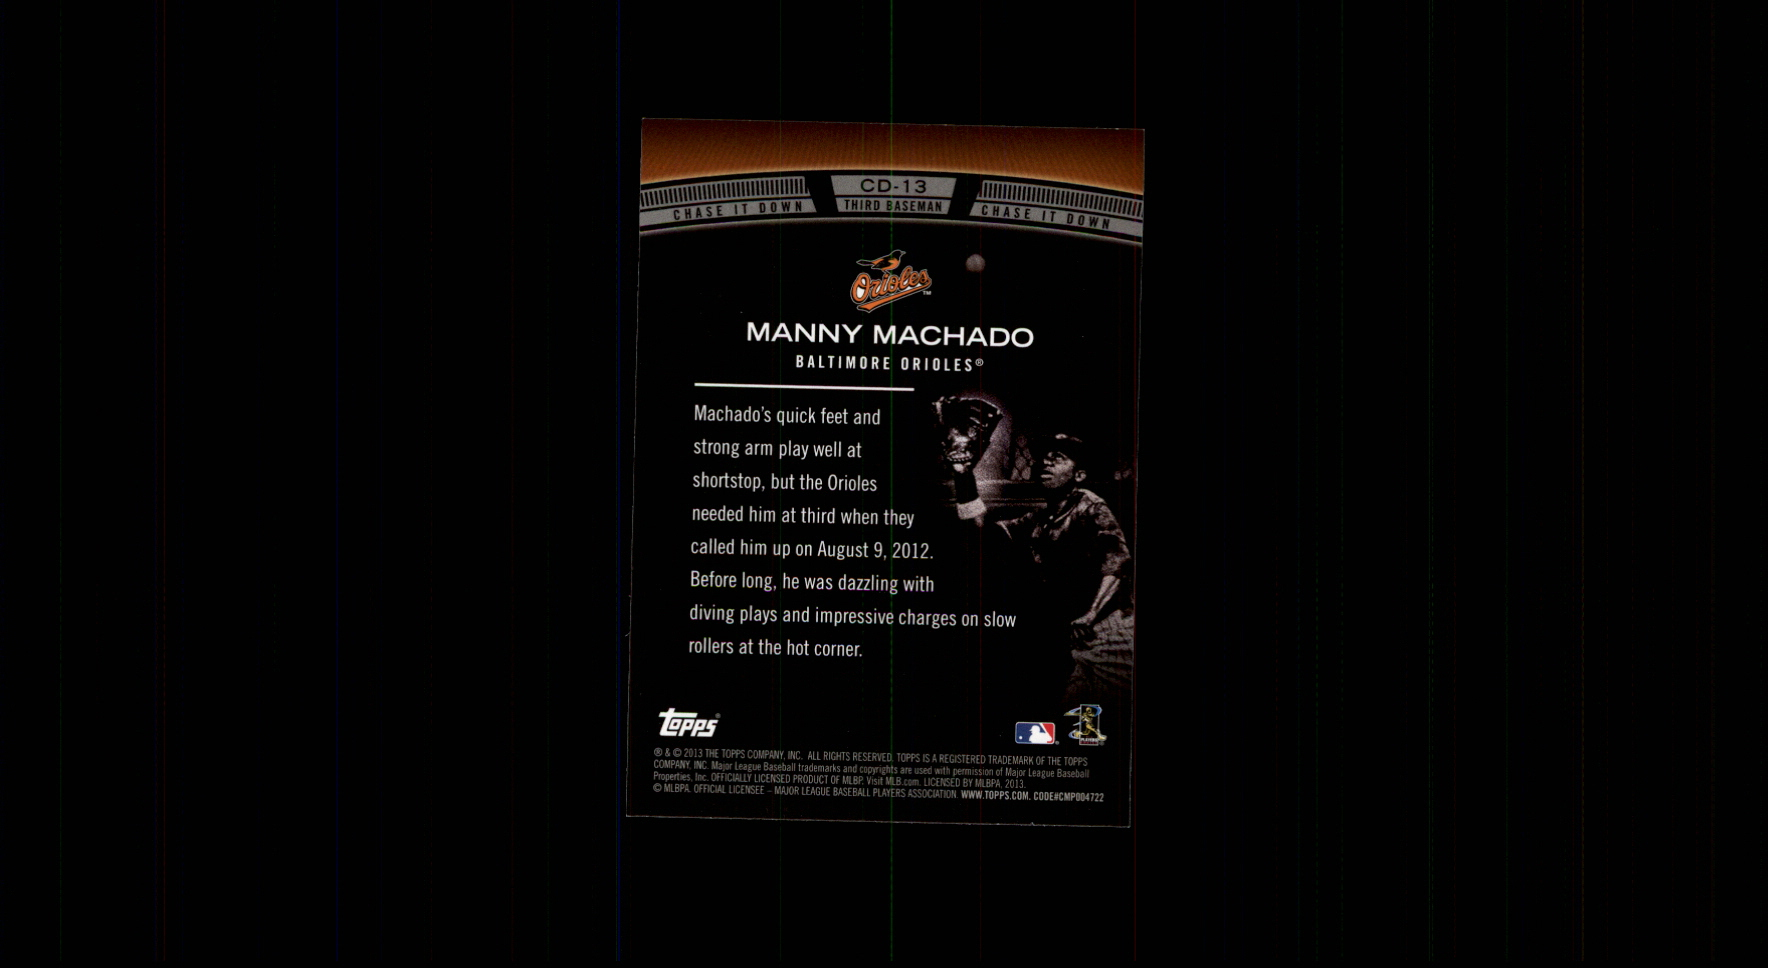 2013 Topps Chase It Down #CD13 Manny Machado back image